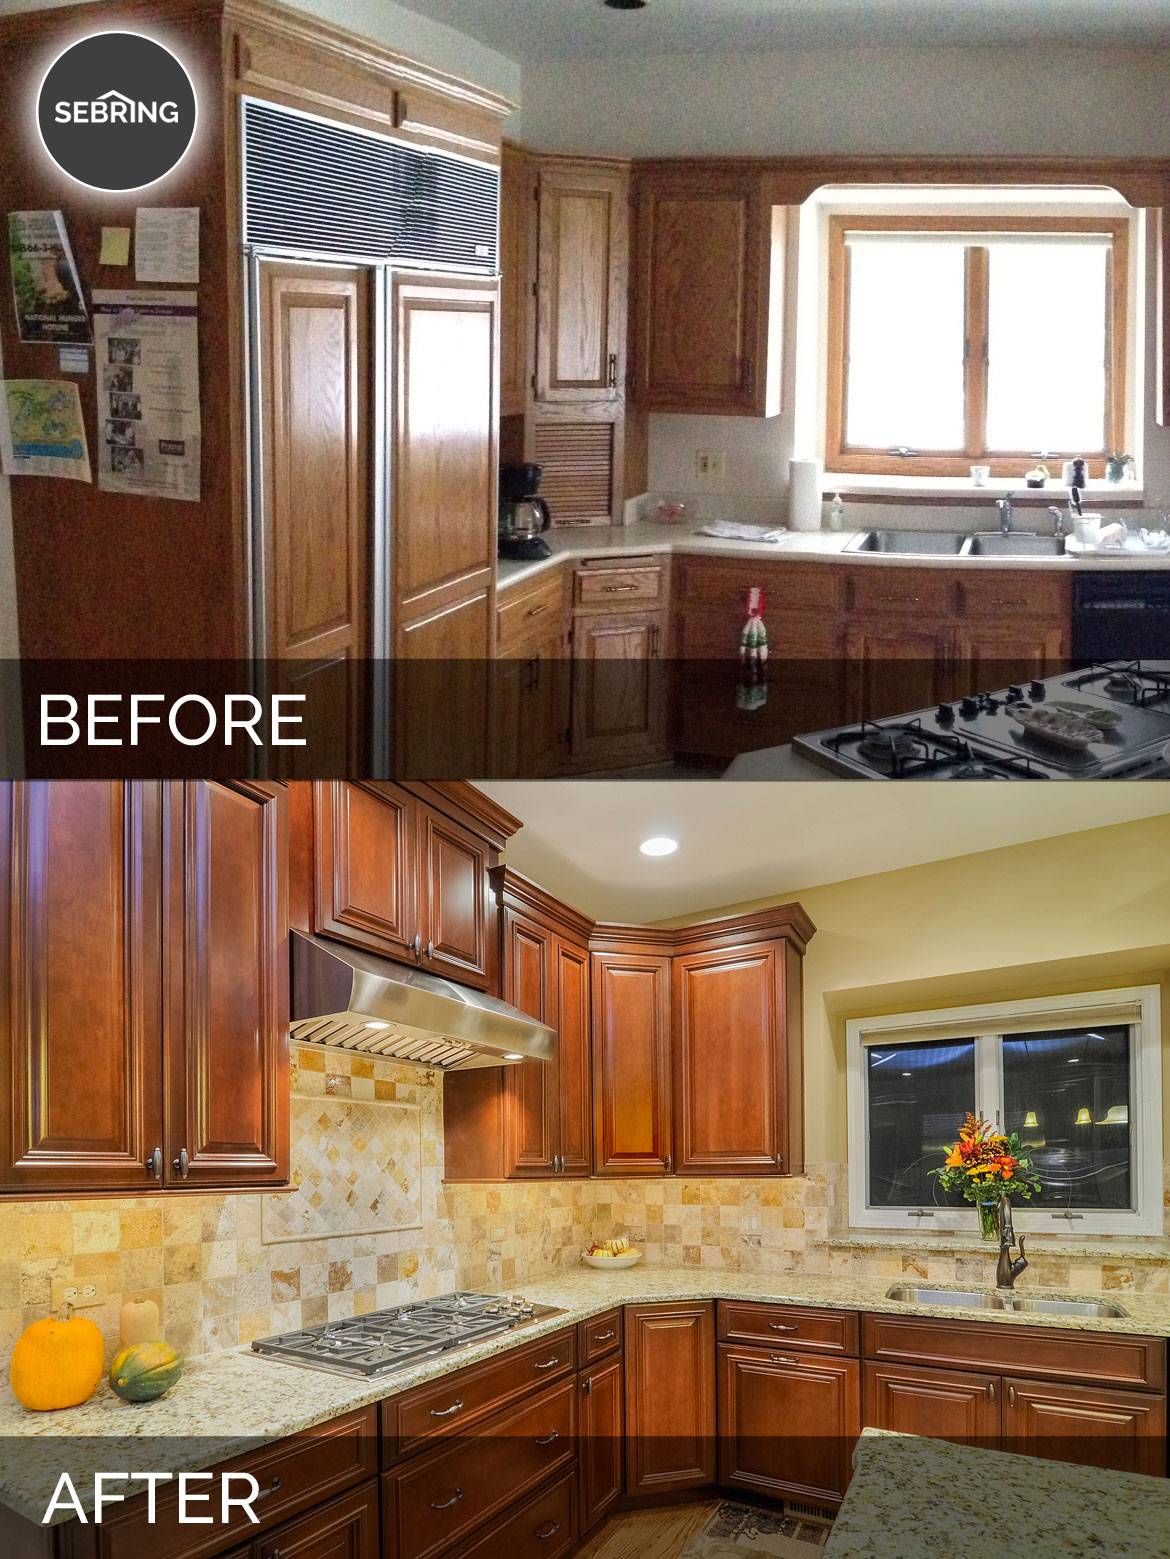 Bernard Amp Karan S Kitchen Before Amp After Pictures Home